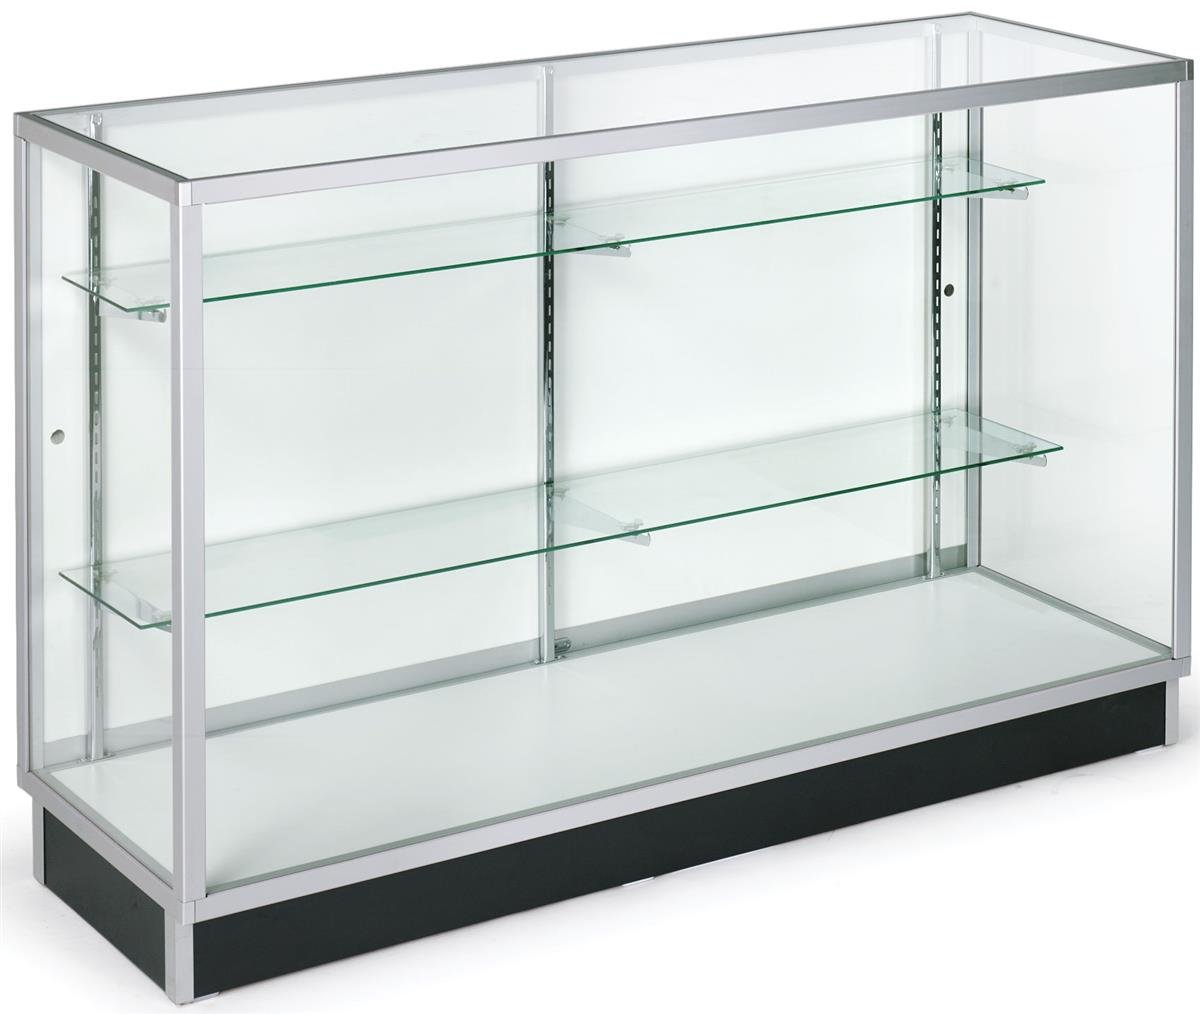 Free-Standing Glass Display Cabinet, 60 x 38 x 20-Inch, Tempered Glass and Aluminum Clear-Coat Frame, for Retail Use